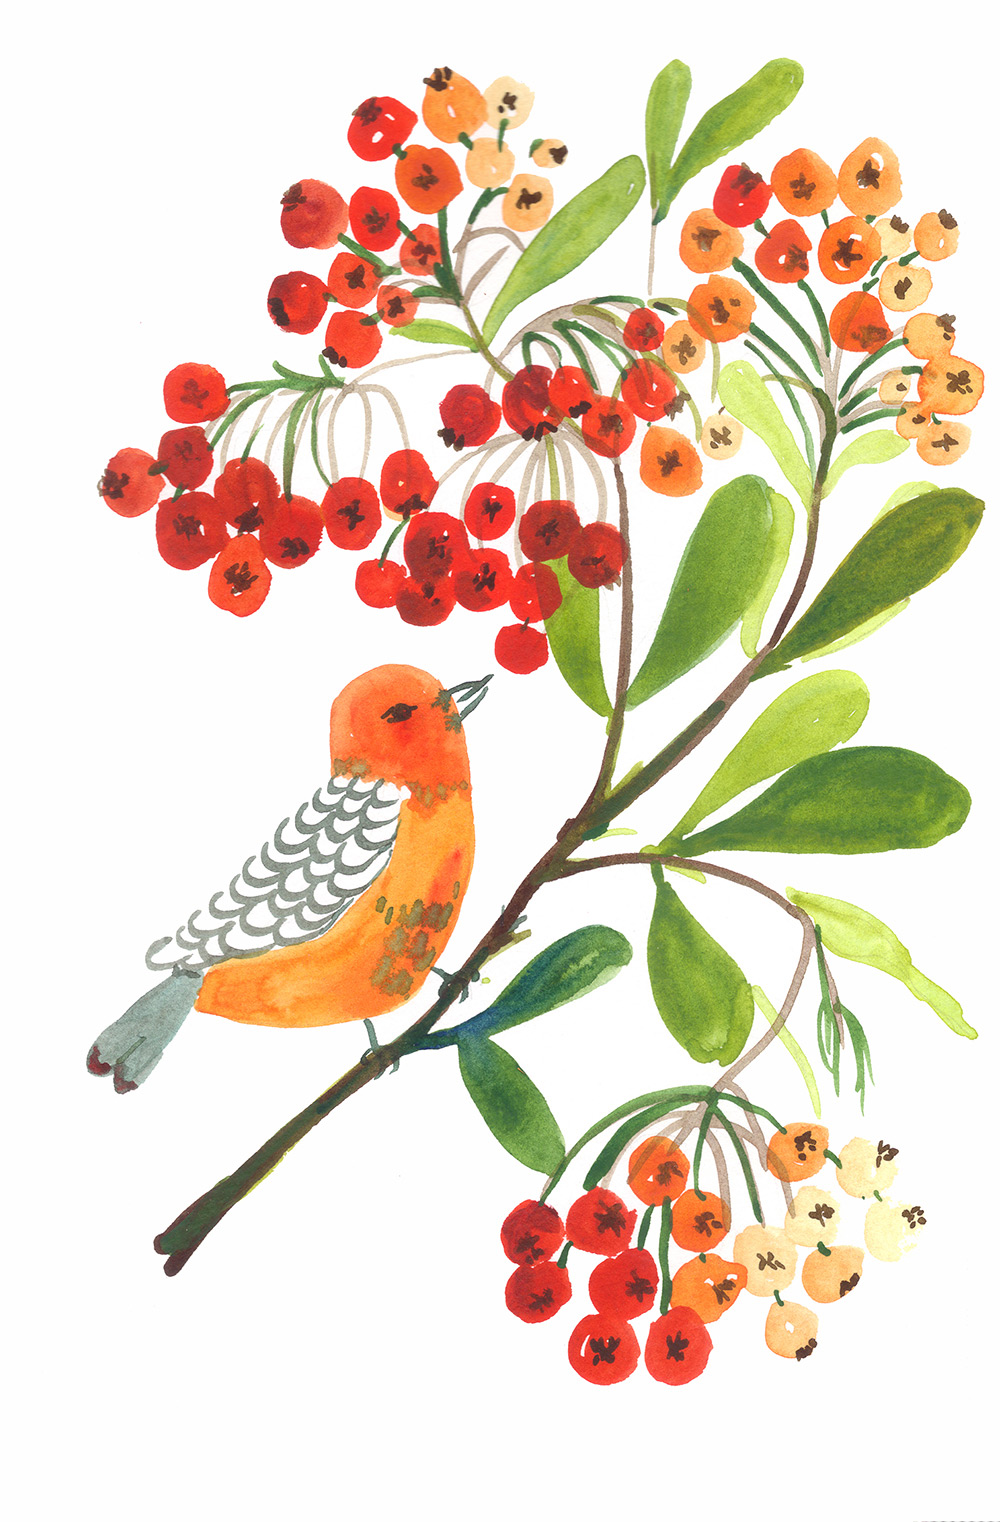 Little bird on a firethorn plant/ bush